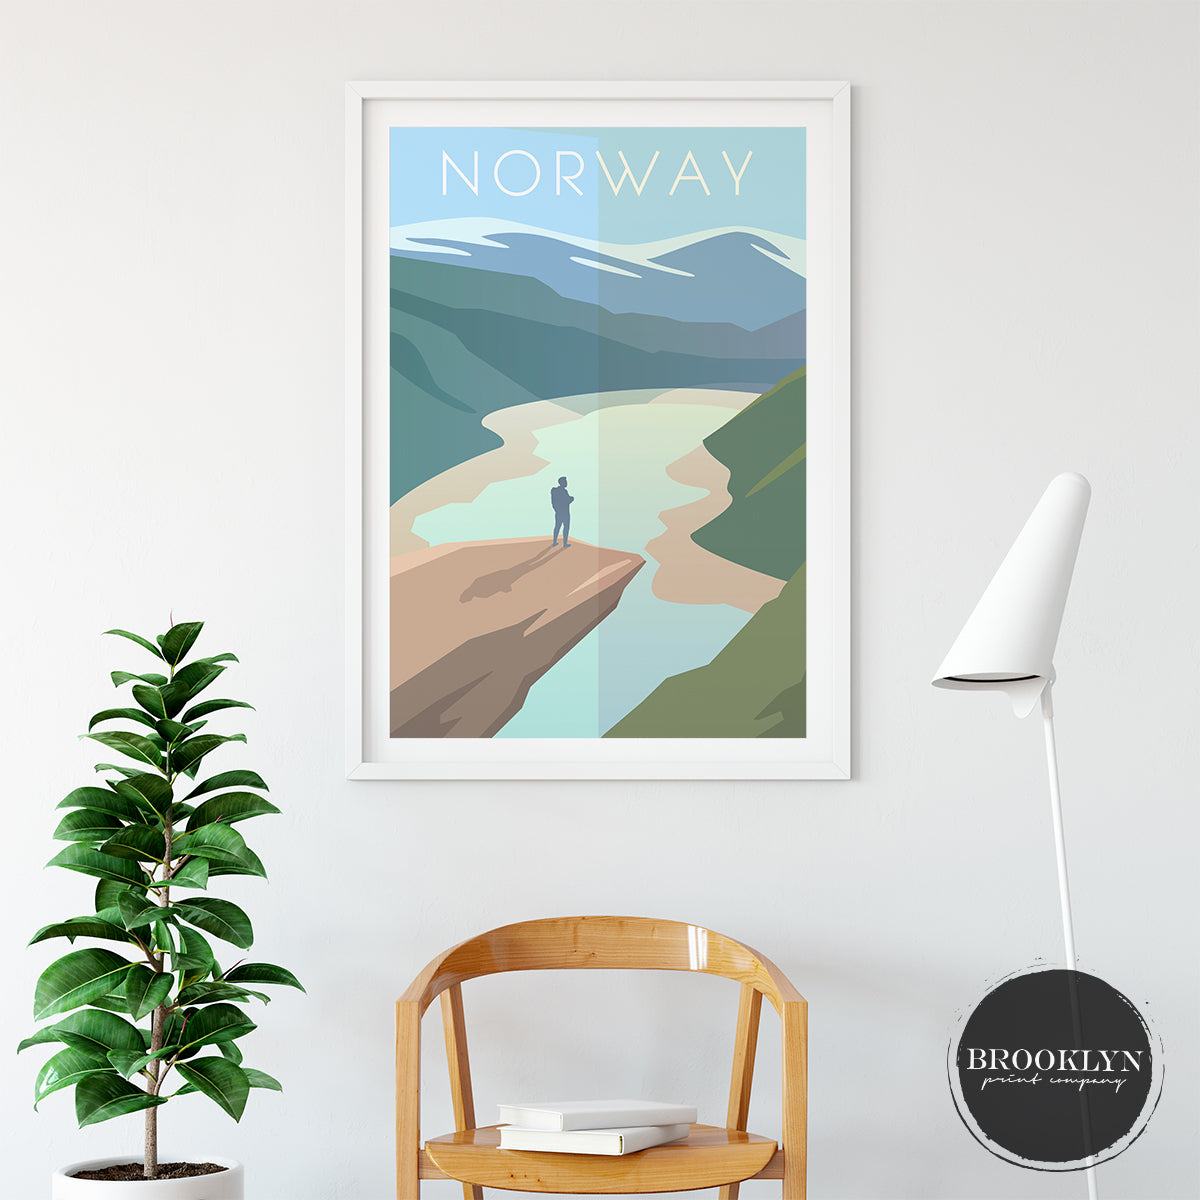 Norway Landscape City Art Travel Poster Art Print - VIVIDEDITIONS